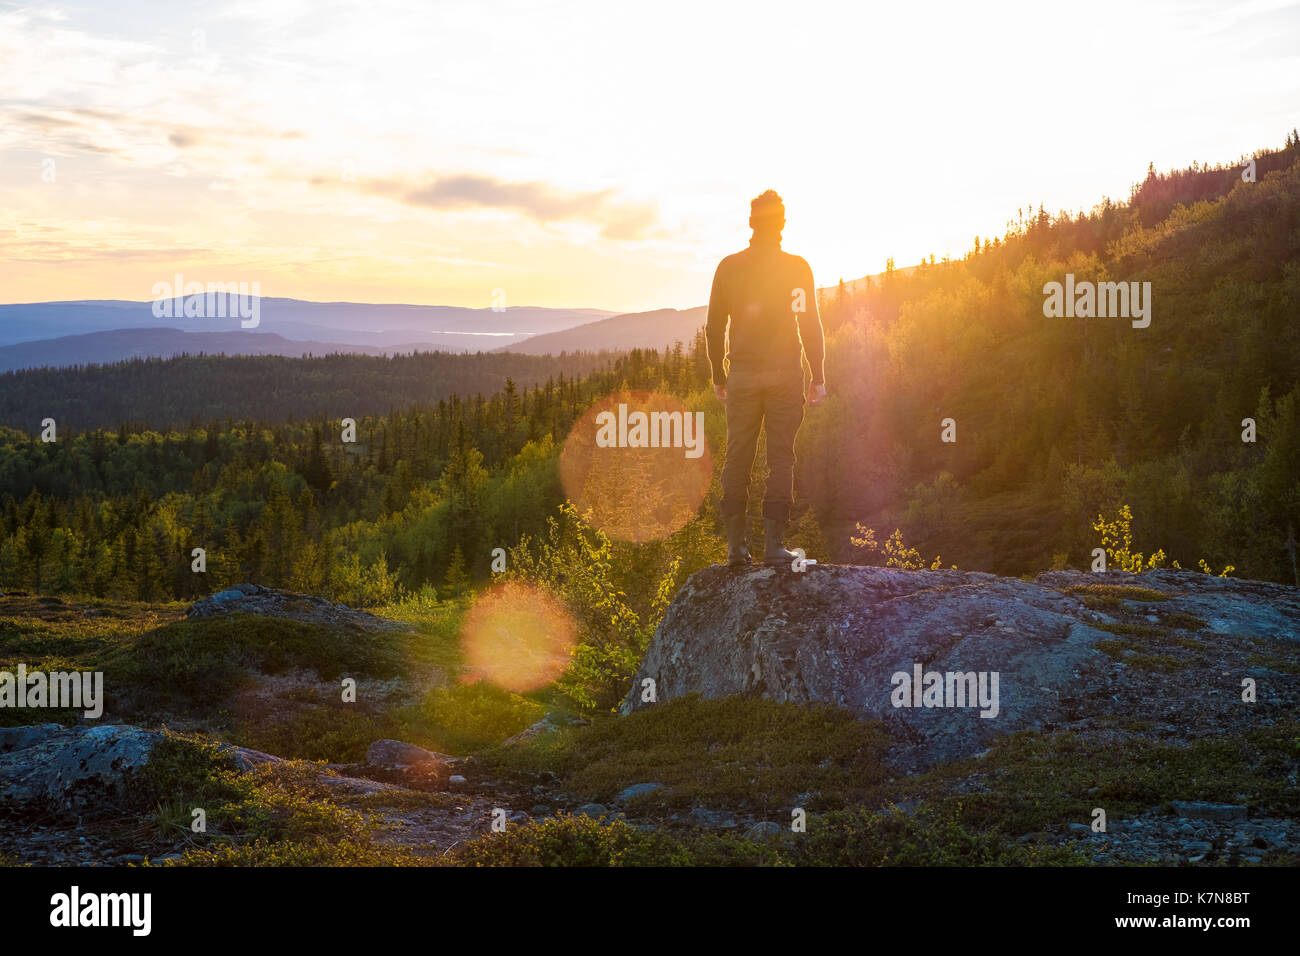 Young man standing on big stone looking into the sunset amidst scenery - Stock Image